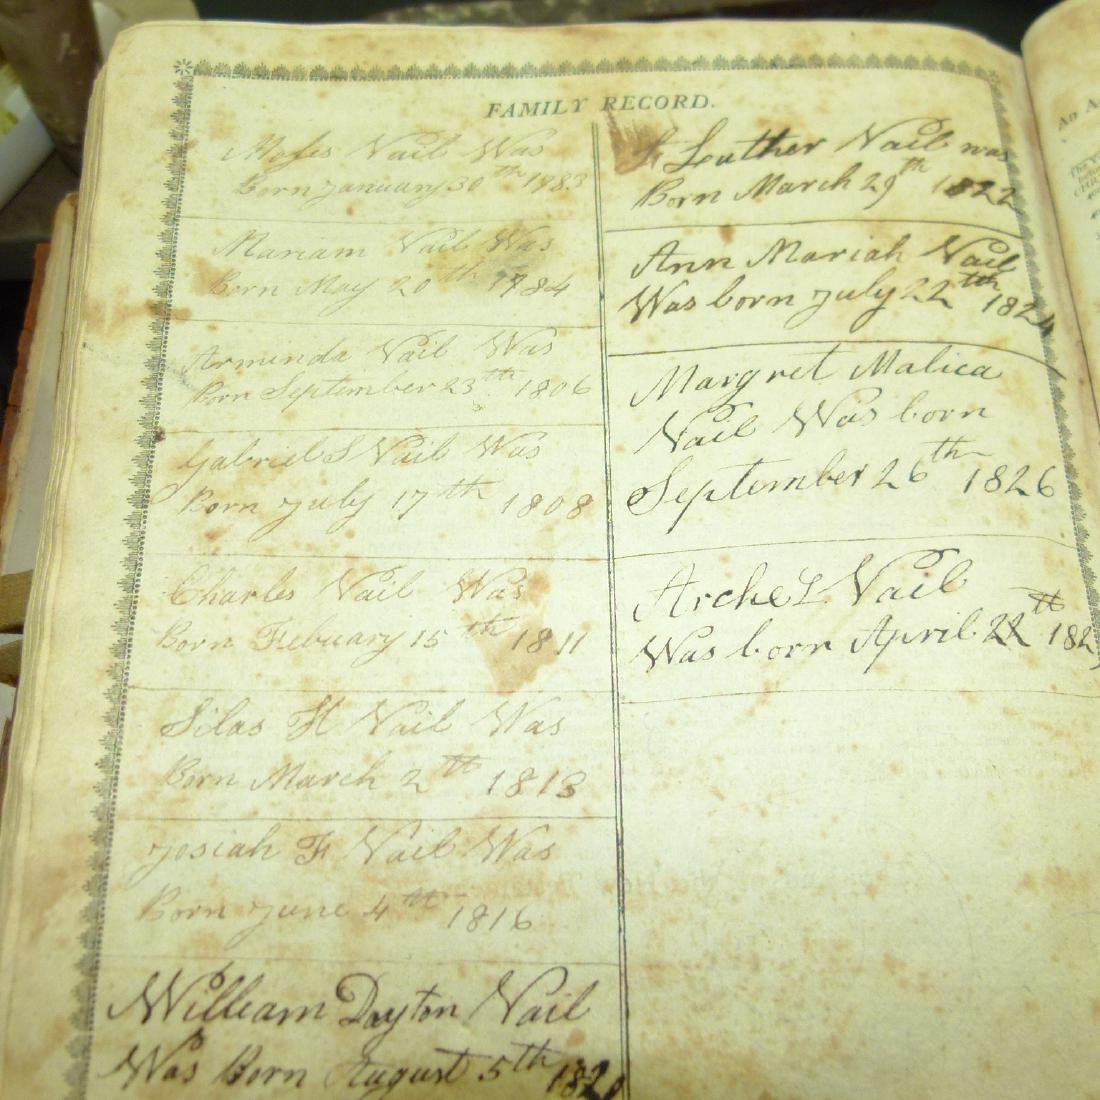 LARGE LOT VAIL FAMILY HOLY BIBLES, 18/19TH C. - 8